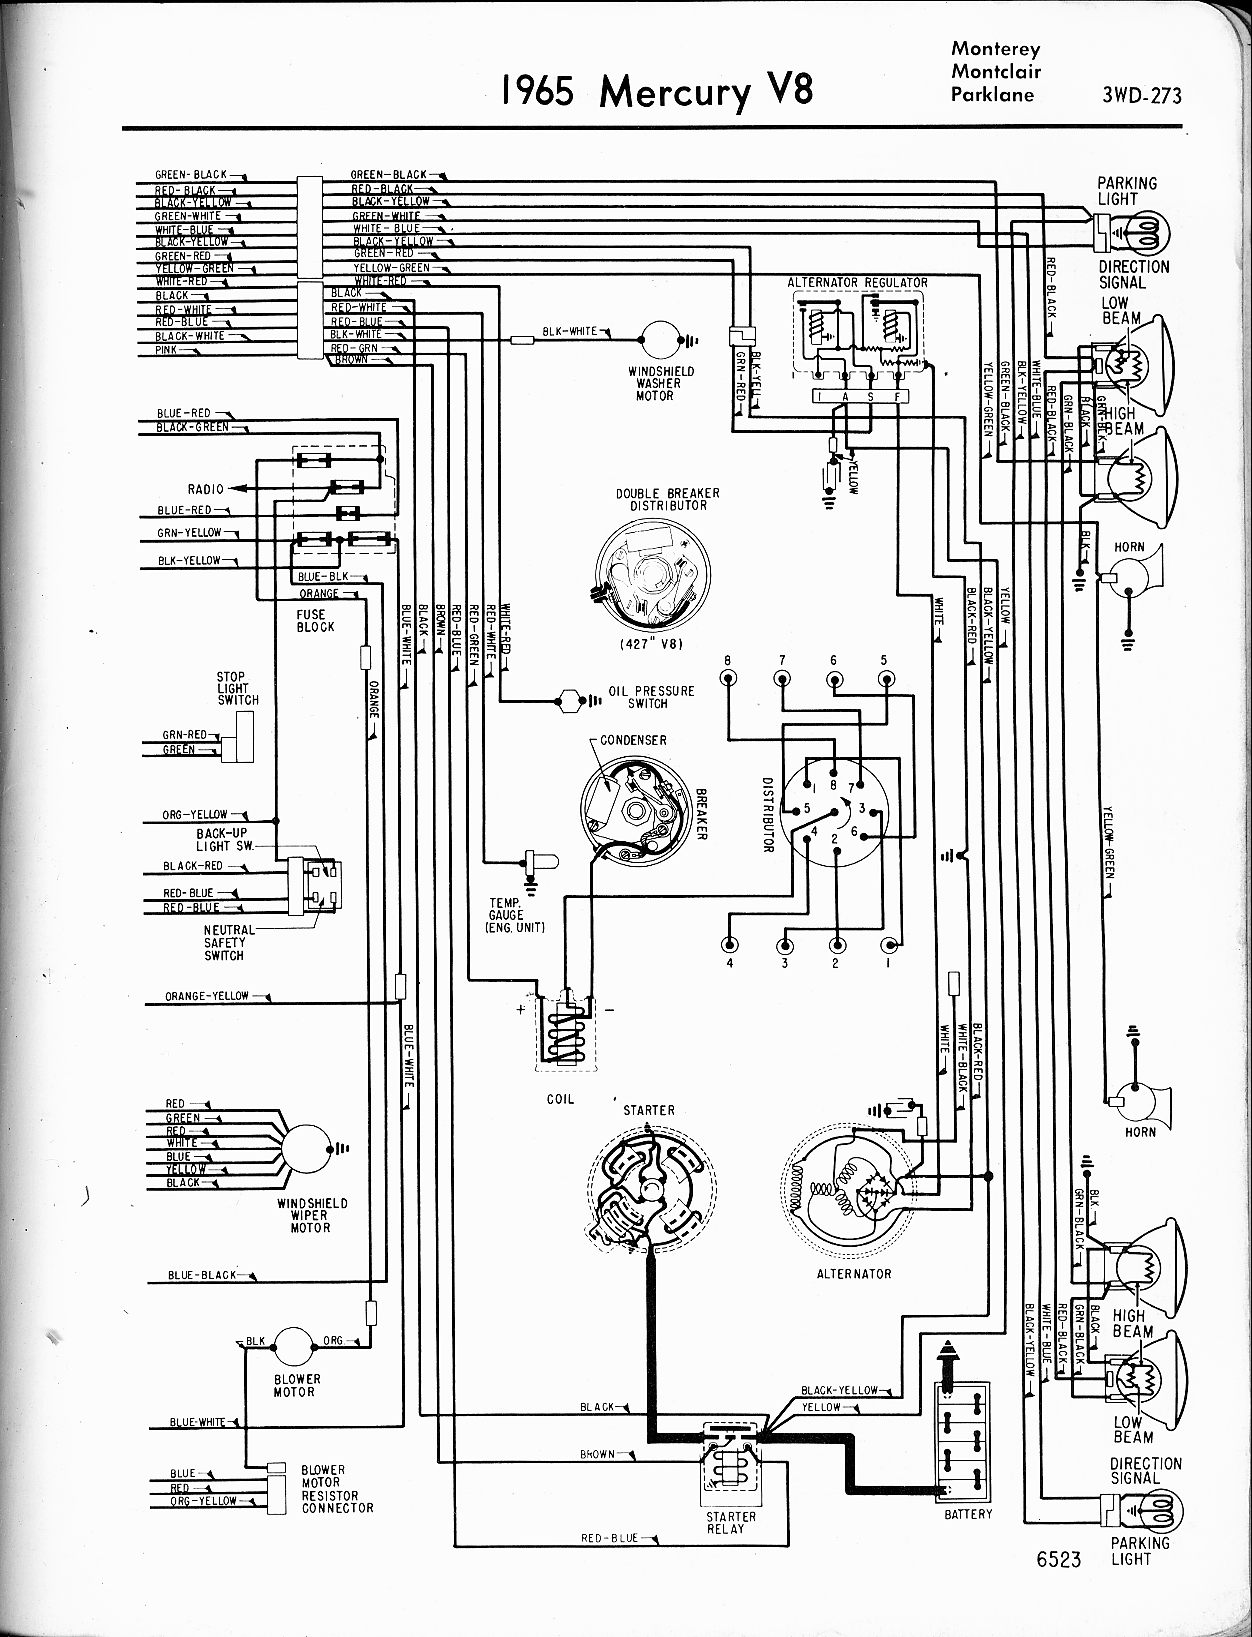 MWire5765 273 mercury wiring diagrams the old car manual project 1965 chevy c10 wiring diagram at gsmportal.co